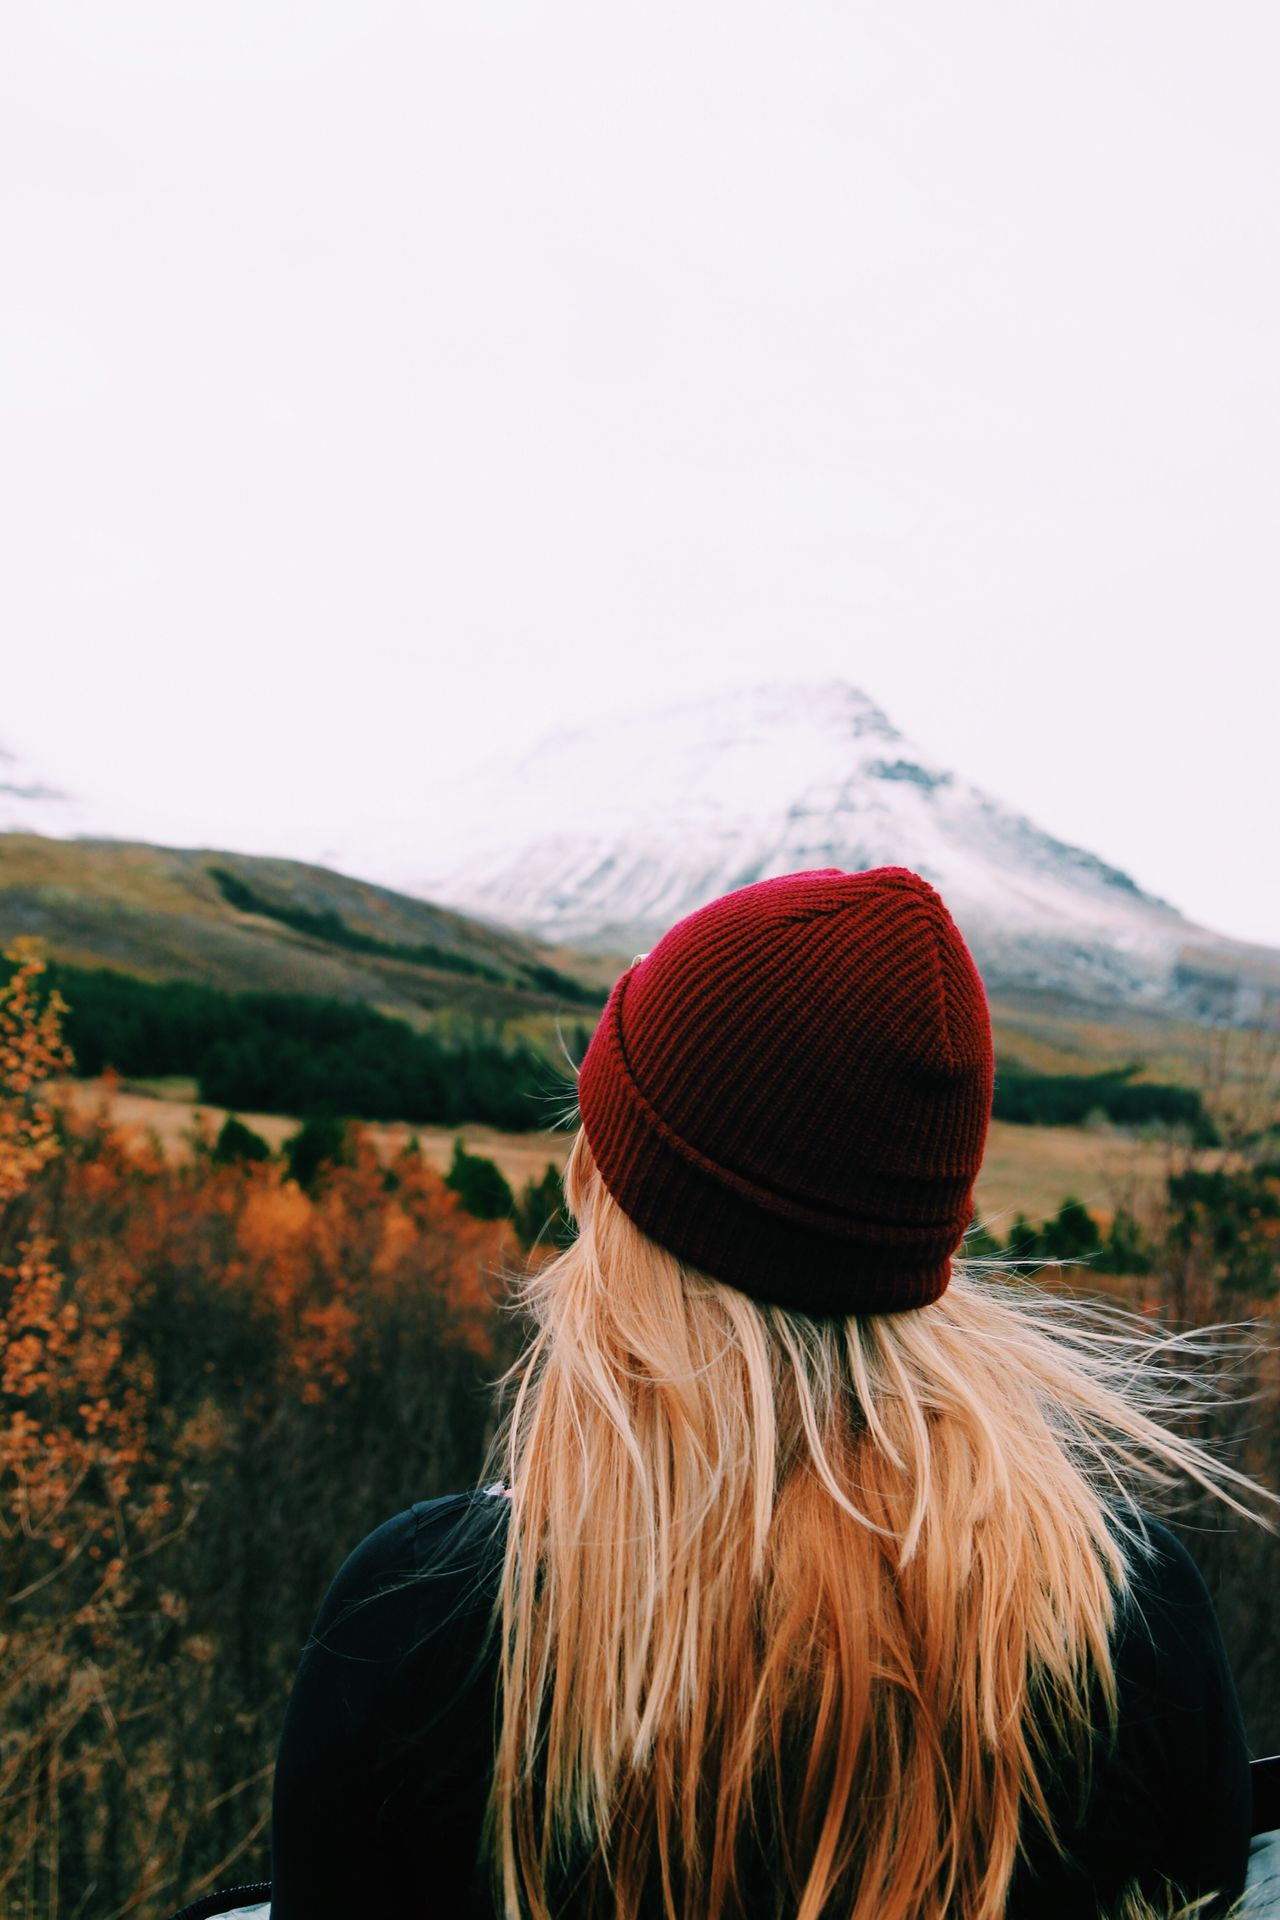 Rear view of woman wearing knit hat against clear sky